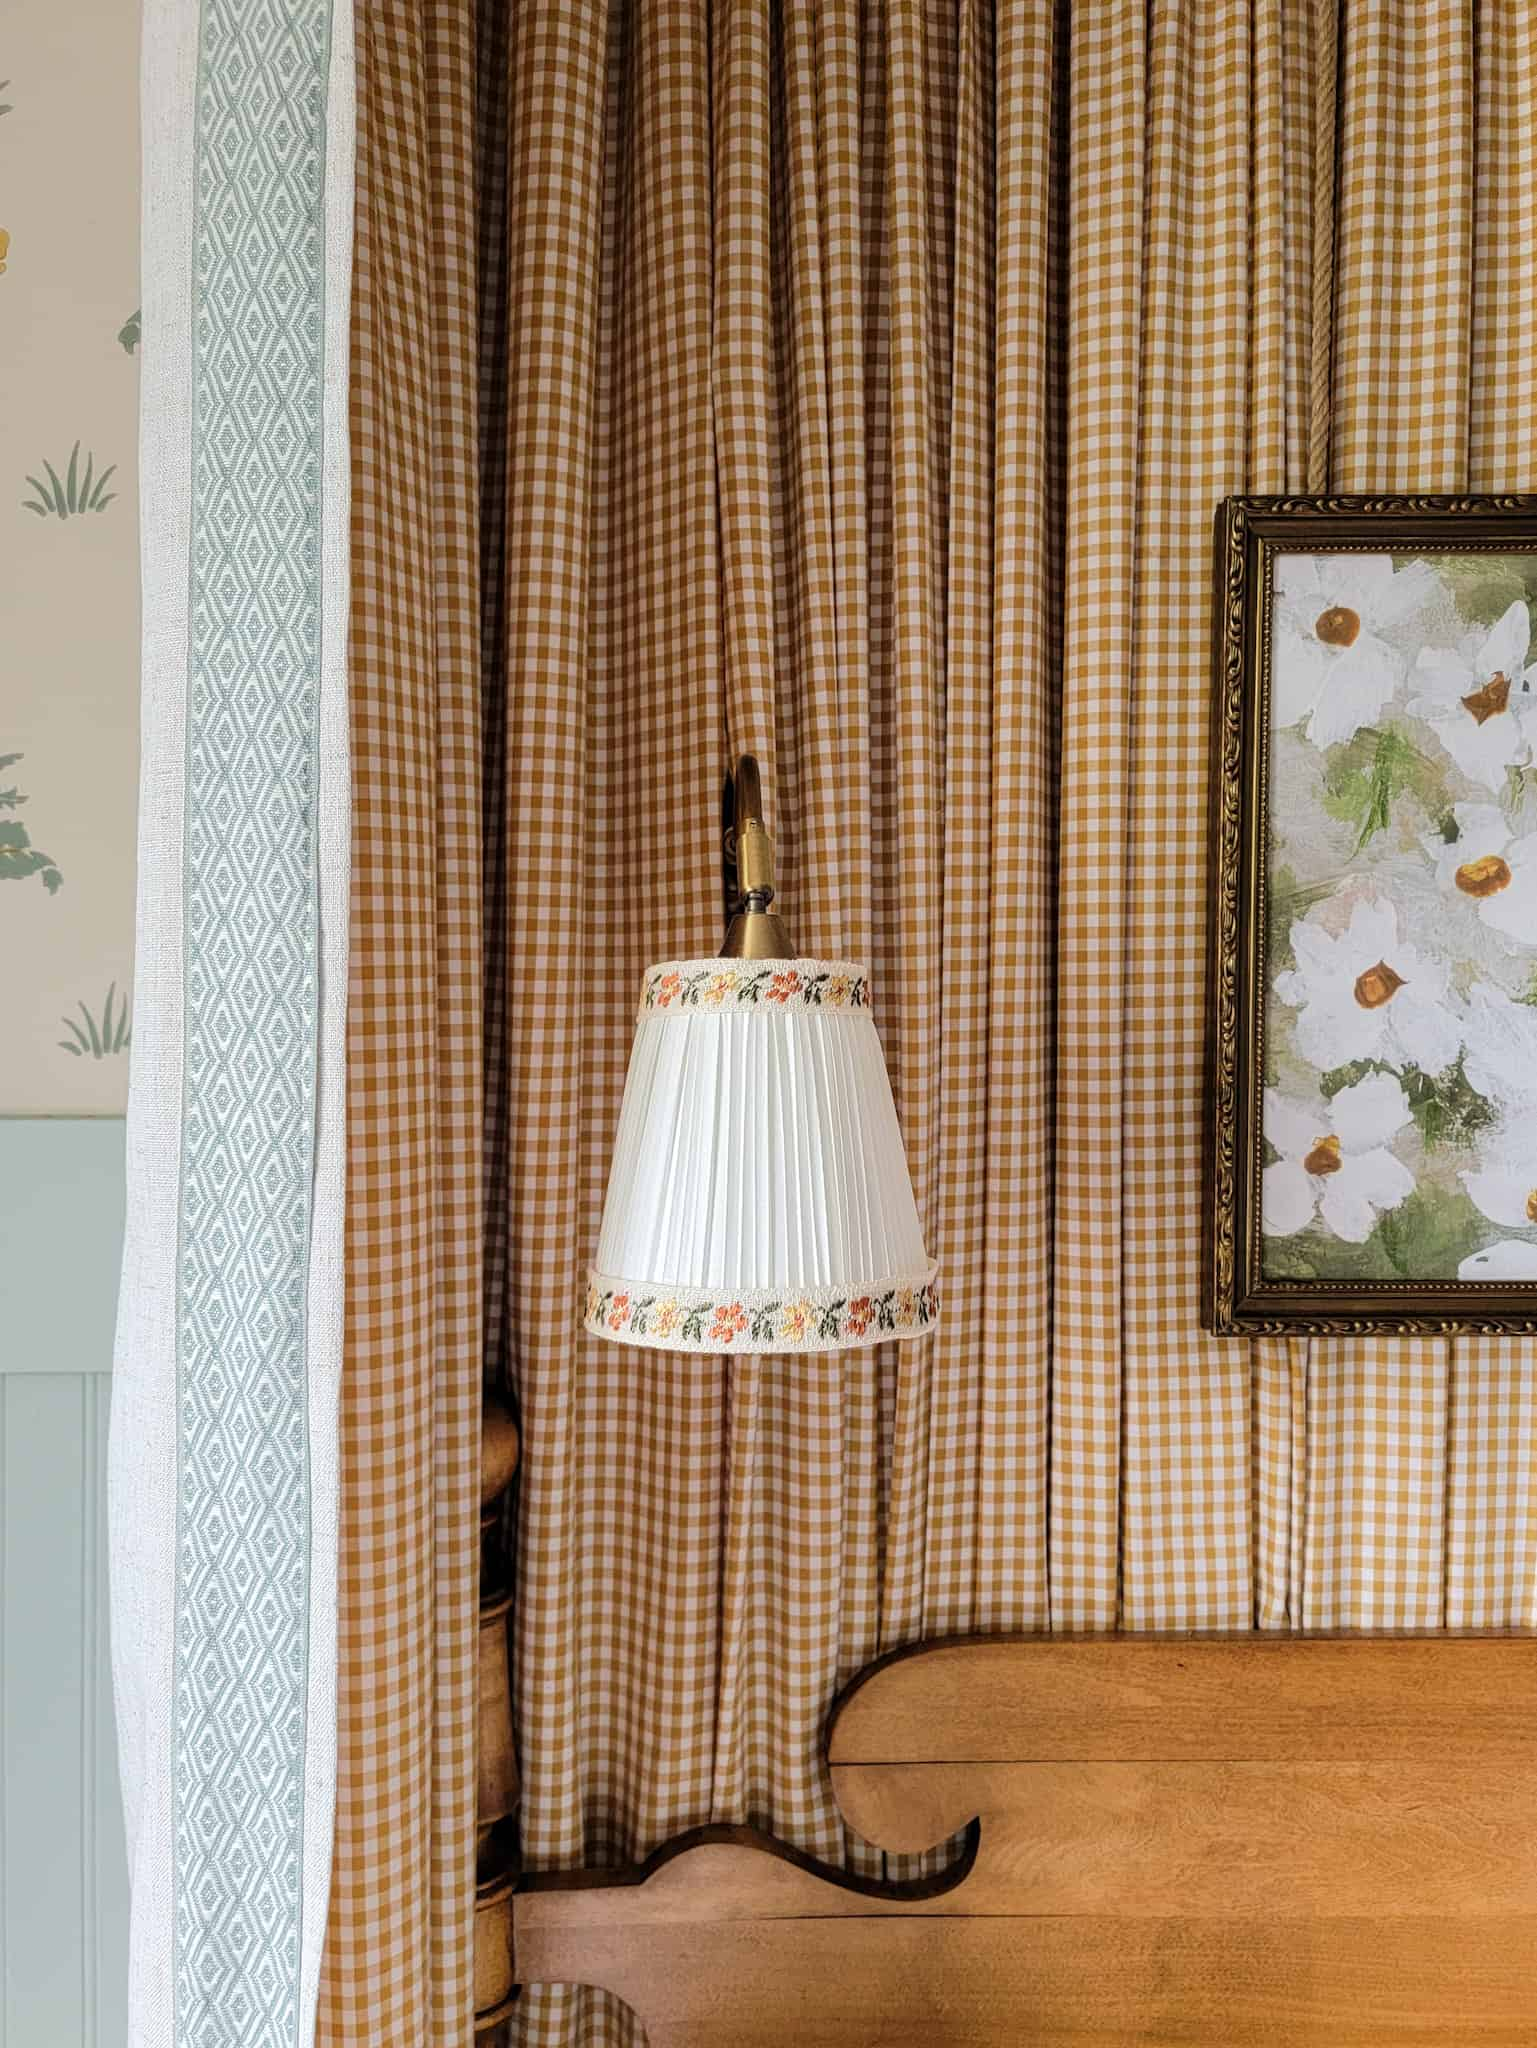 sconce with decorative trim on top of yellow gingham fabric